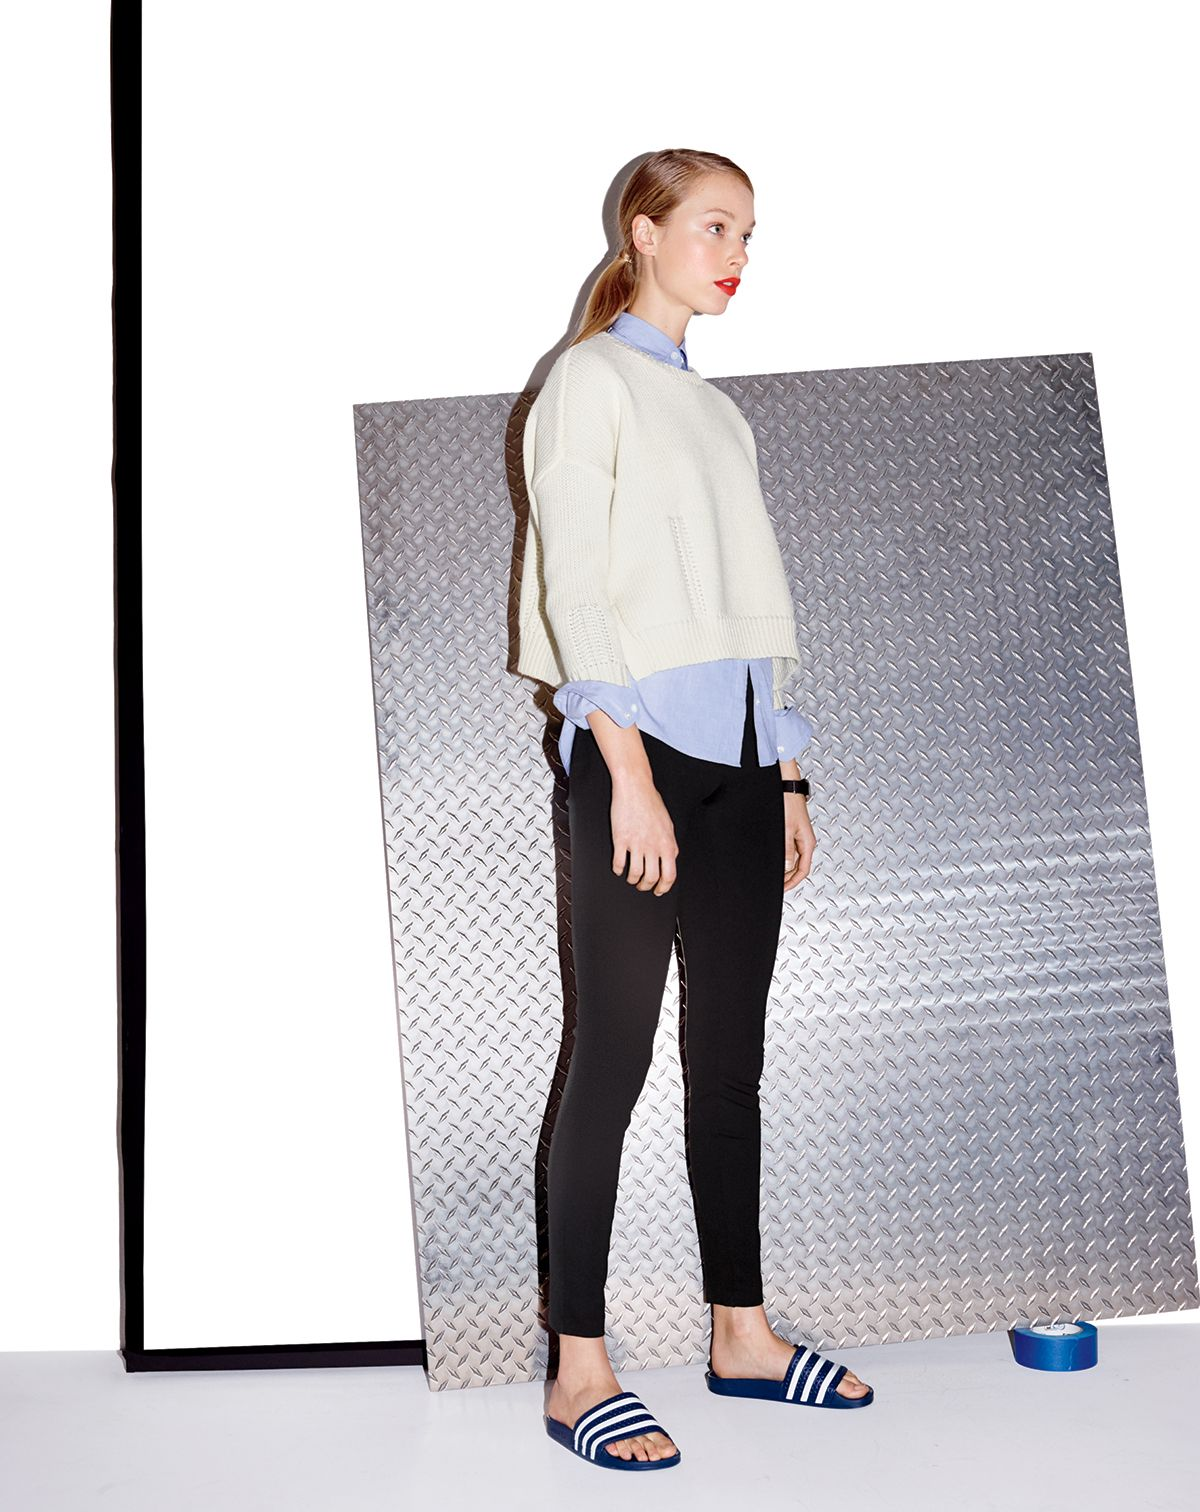 03d819c26 AUG '14 Style Guide: J.Crew women's Demylee™ giselle sweater, Pixie pant  and Adidas adilette slides.